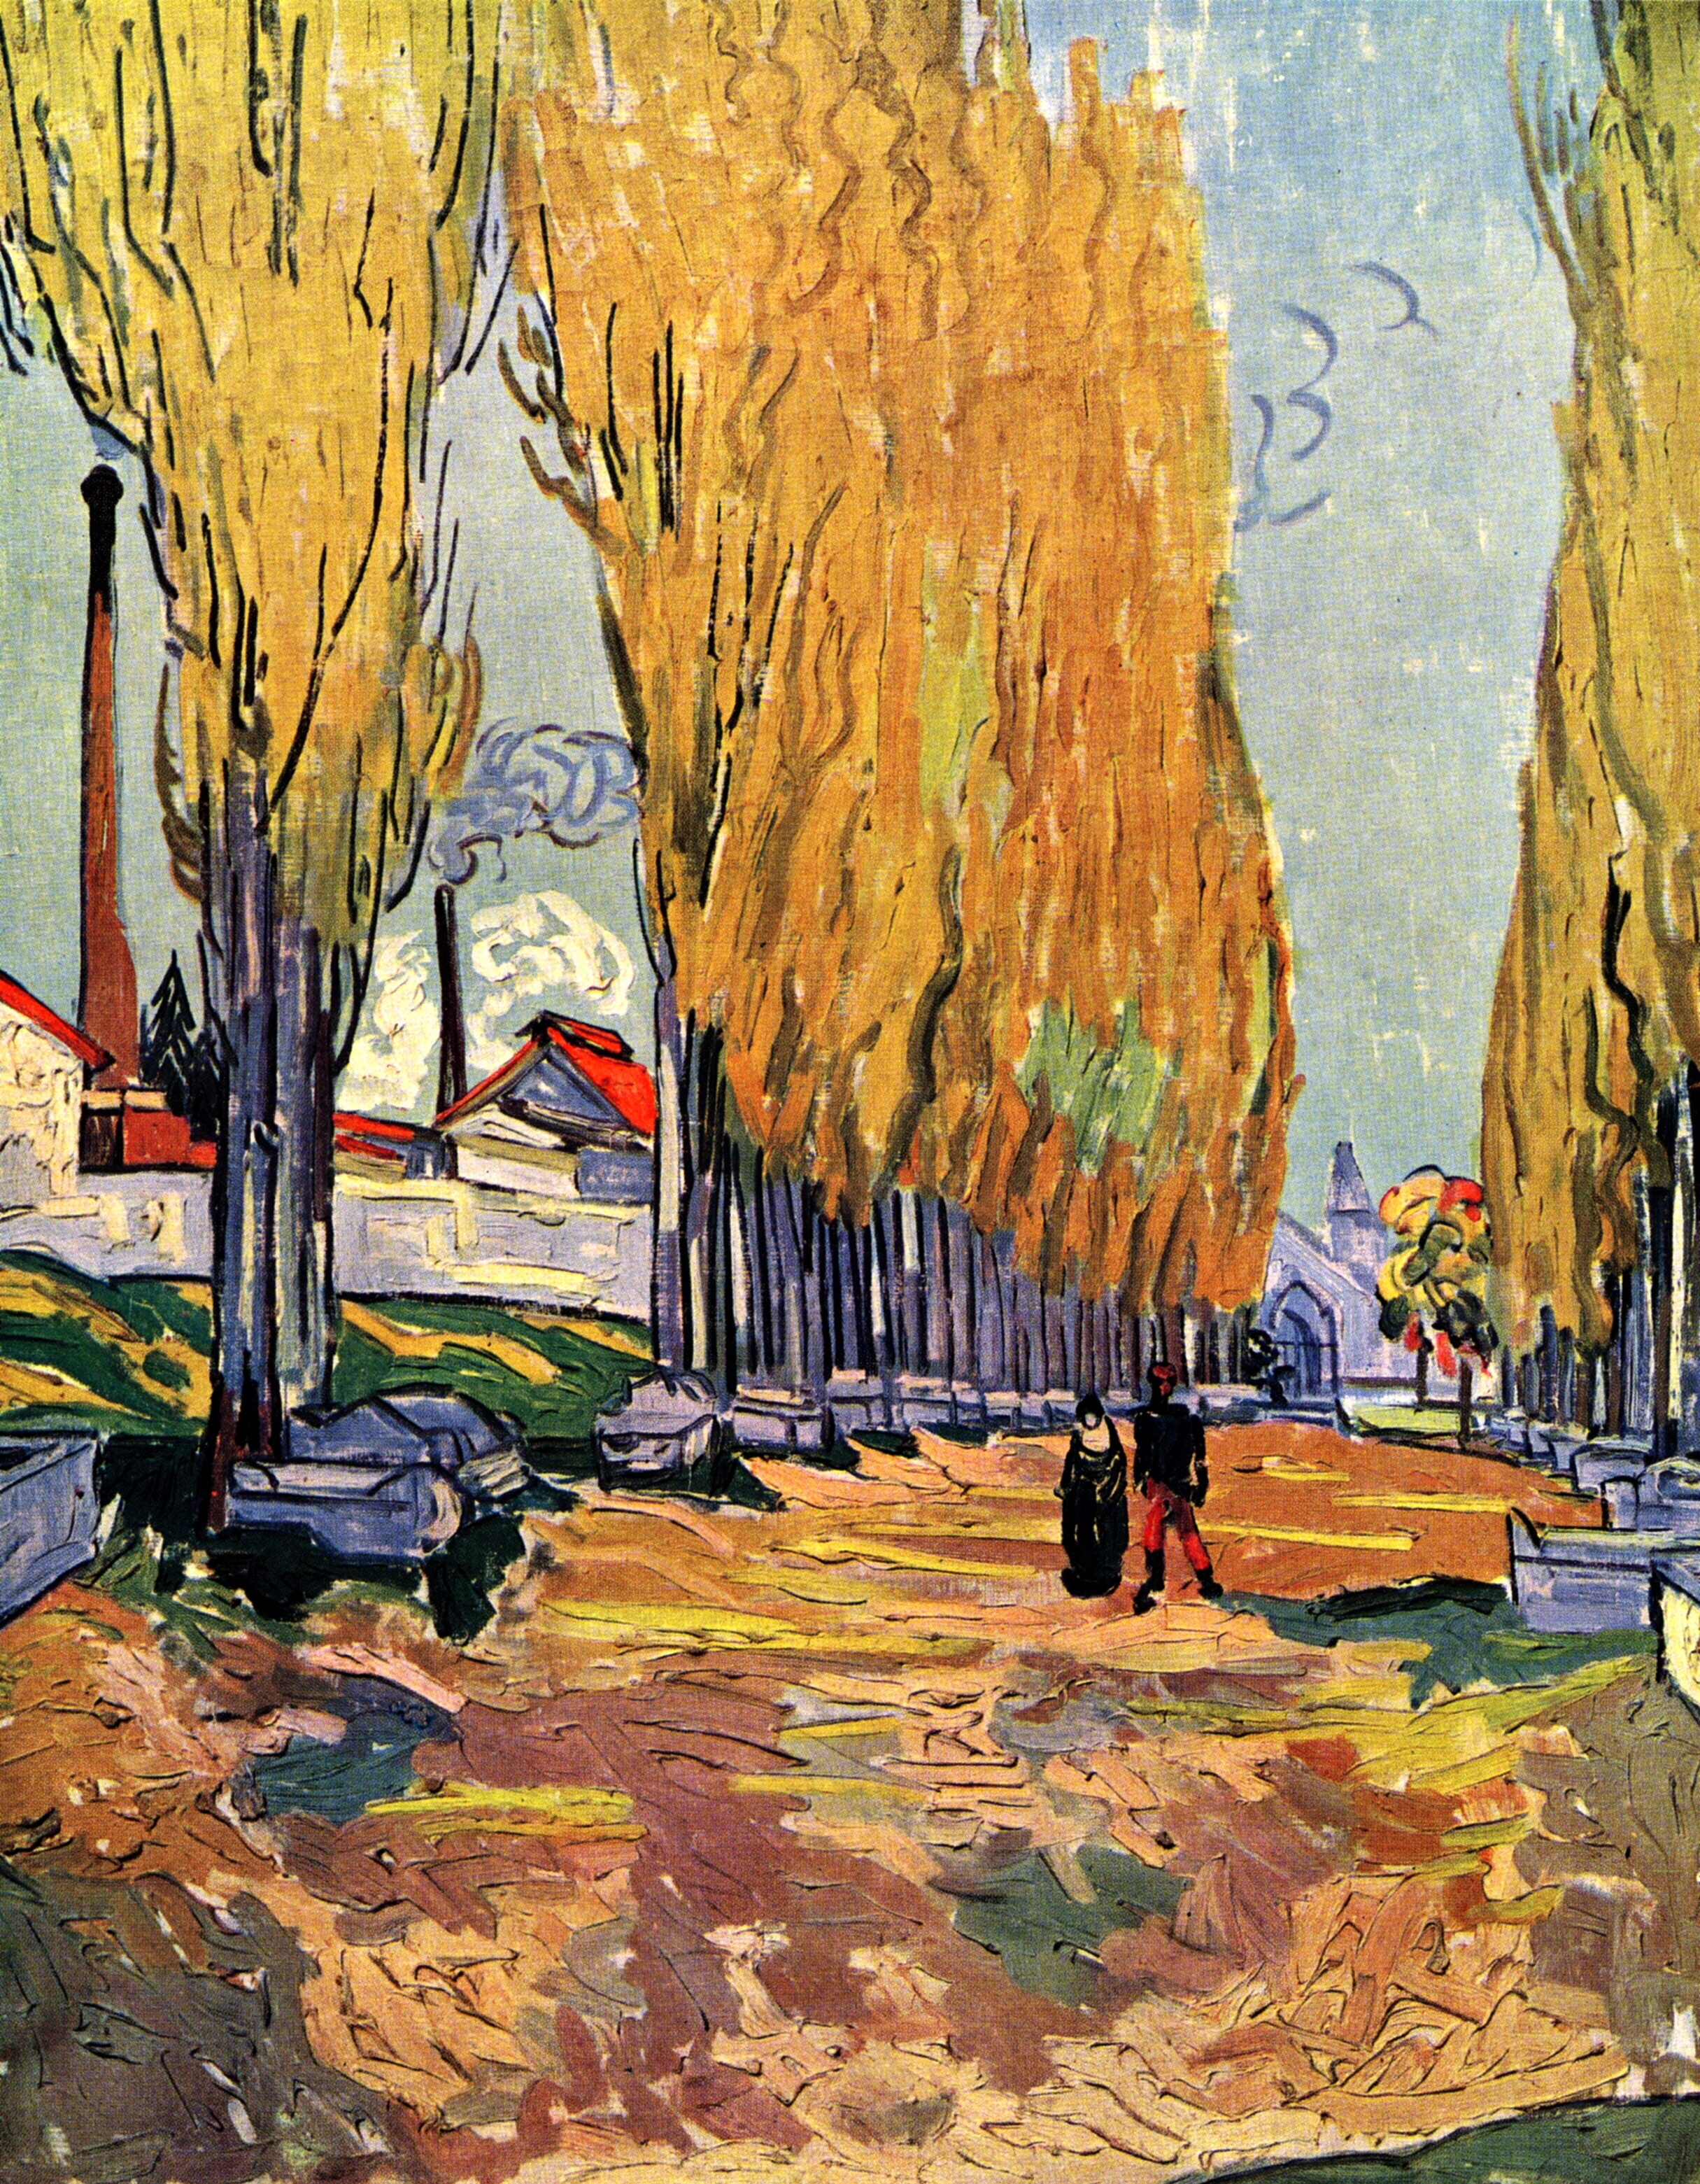 Les alyscamps 1888 vincent van gogh for Van gogh paintings locations